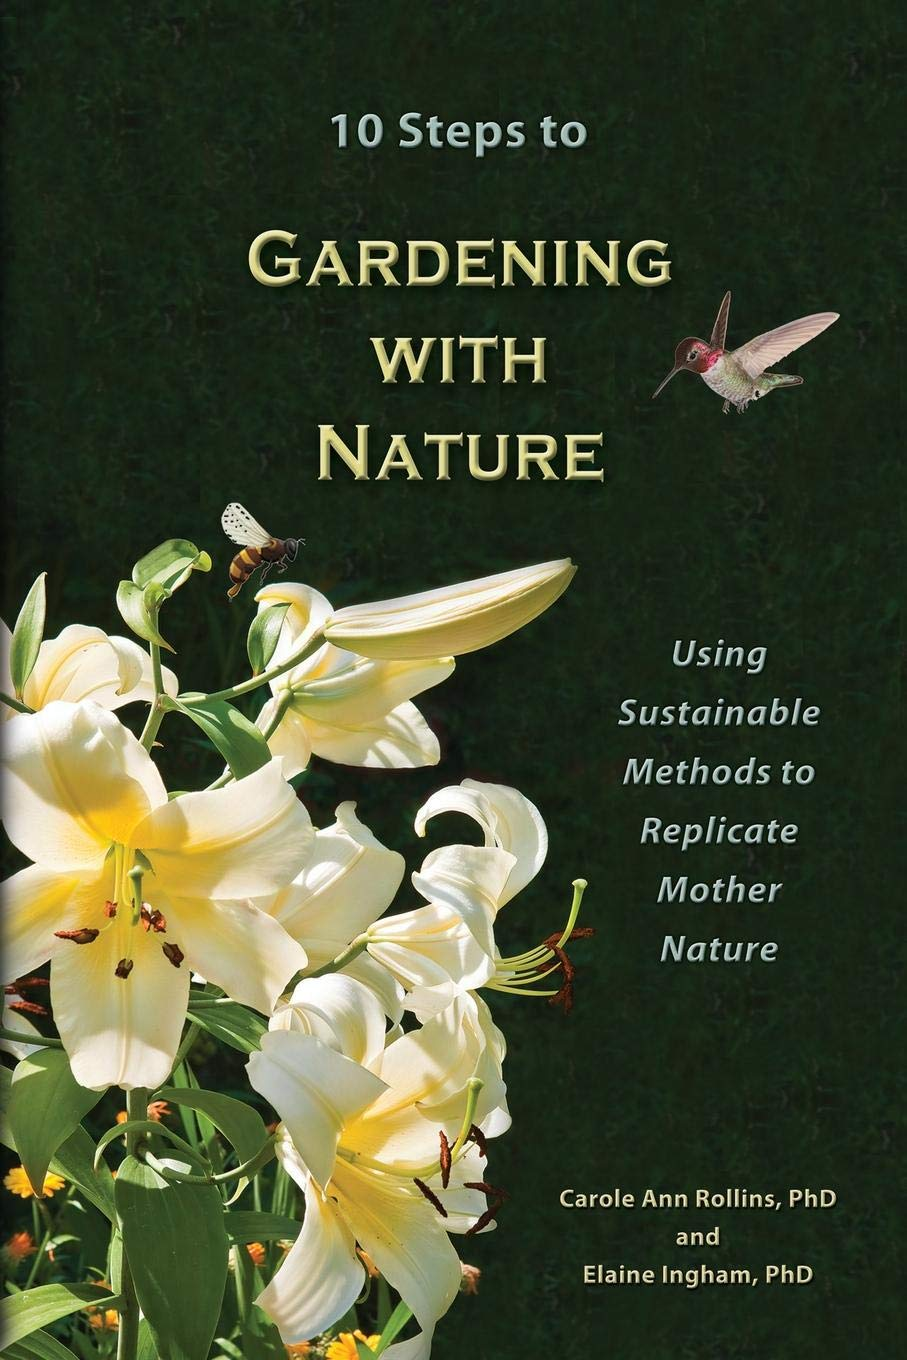 Beau 10 Steps To Gardening With Nature: Carole Ann Rollins, Elaine Ingham:  9780979756146: Amazon.com: Books